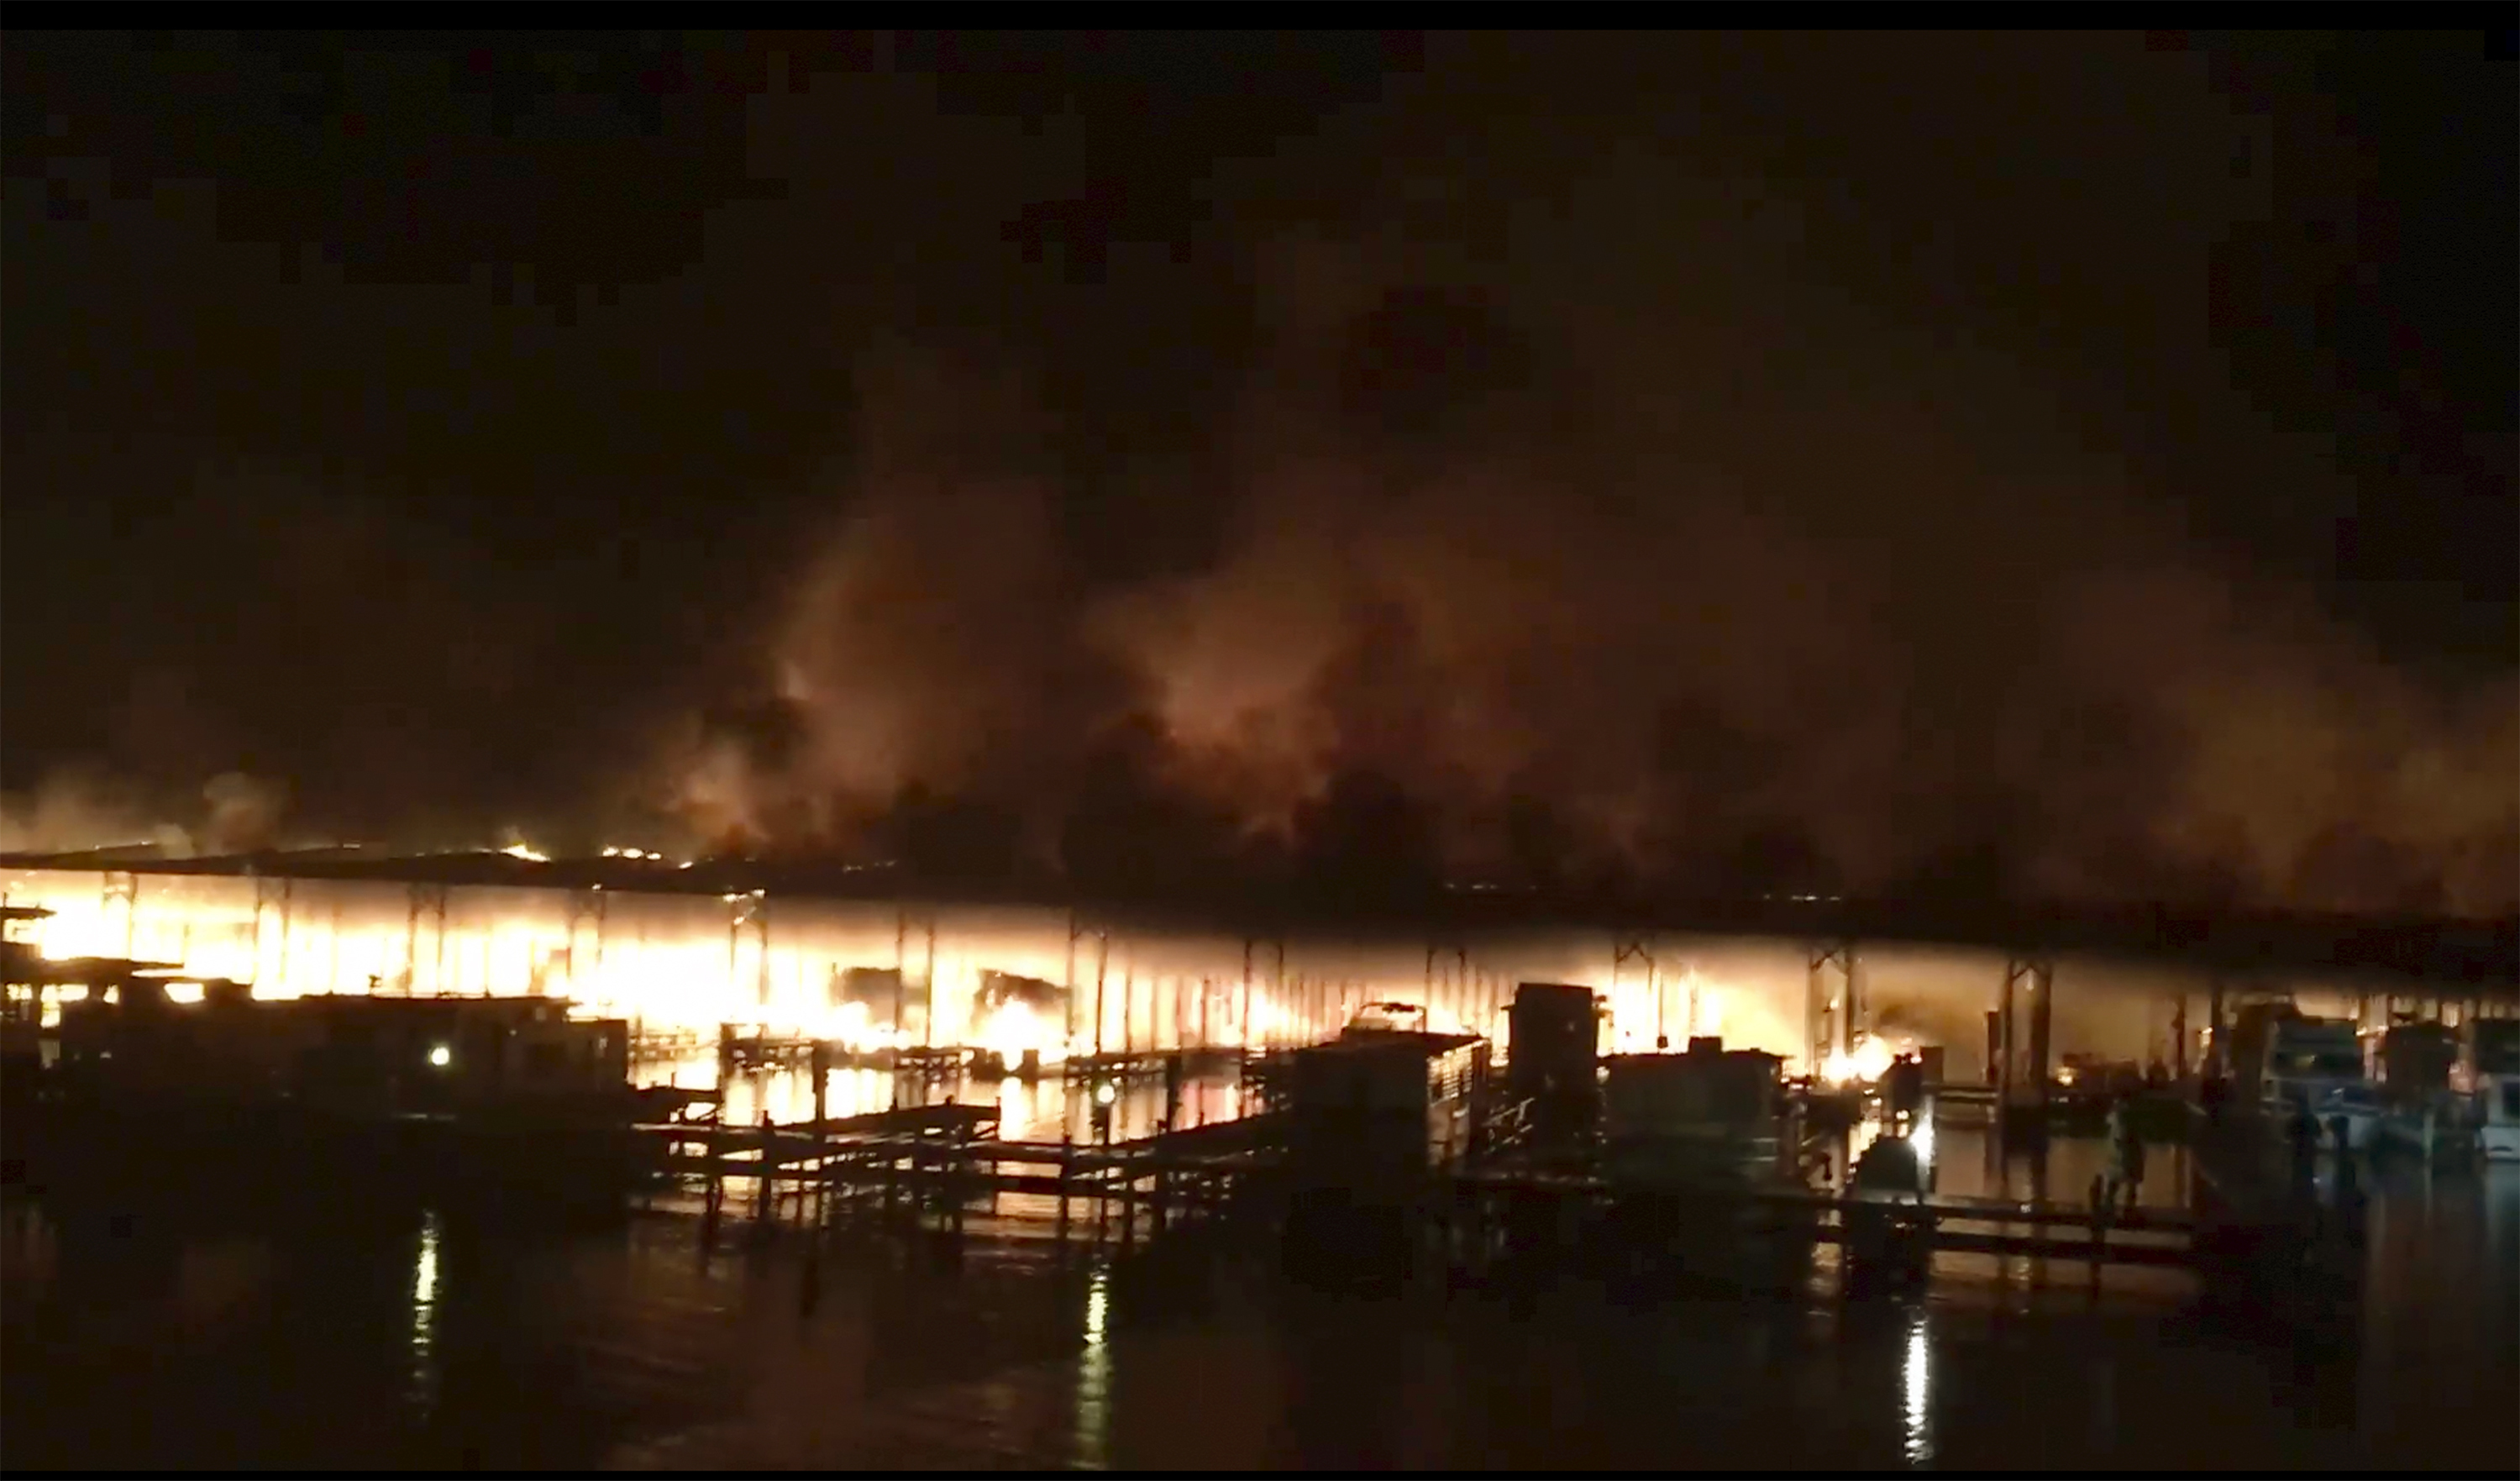 Fire burning on a dock where at least 35 vessels, many of them houseboats, were destroyed early  Jan. 27, 2020, in Scottsboro, Ala. Scottsboro Fire Chief Gene Necklaus is confirming fatalities following the blaze.